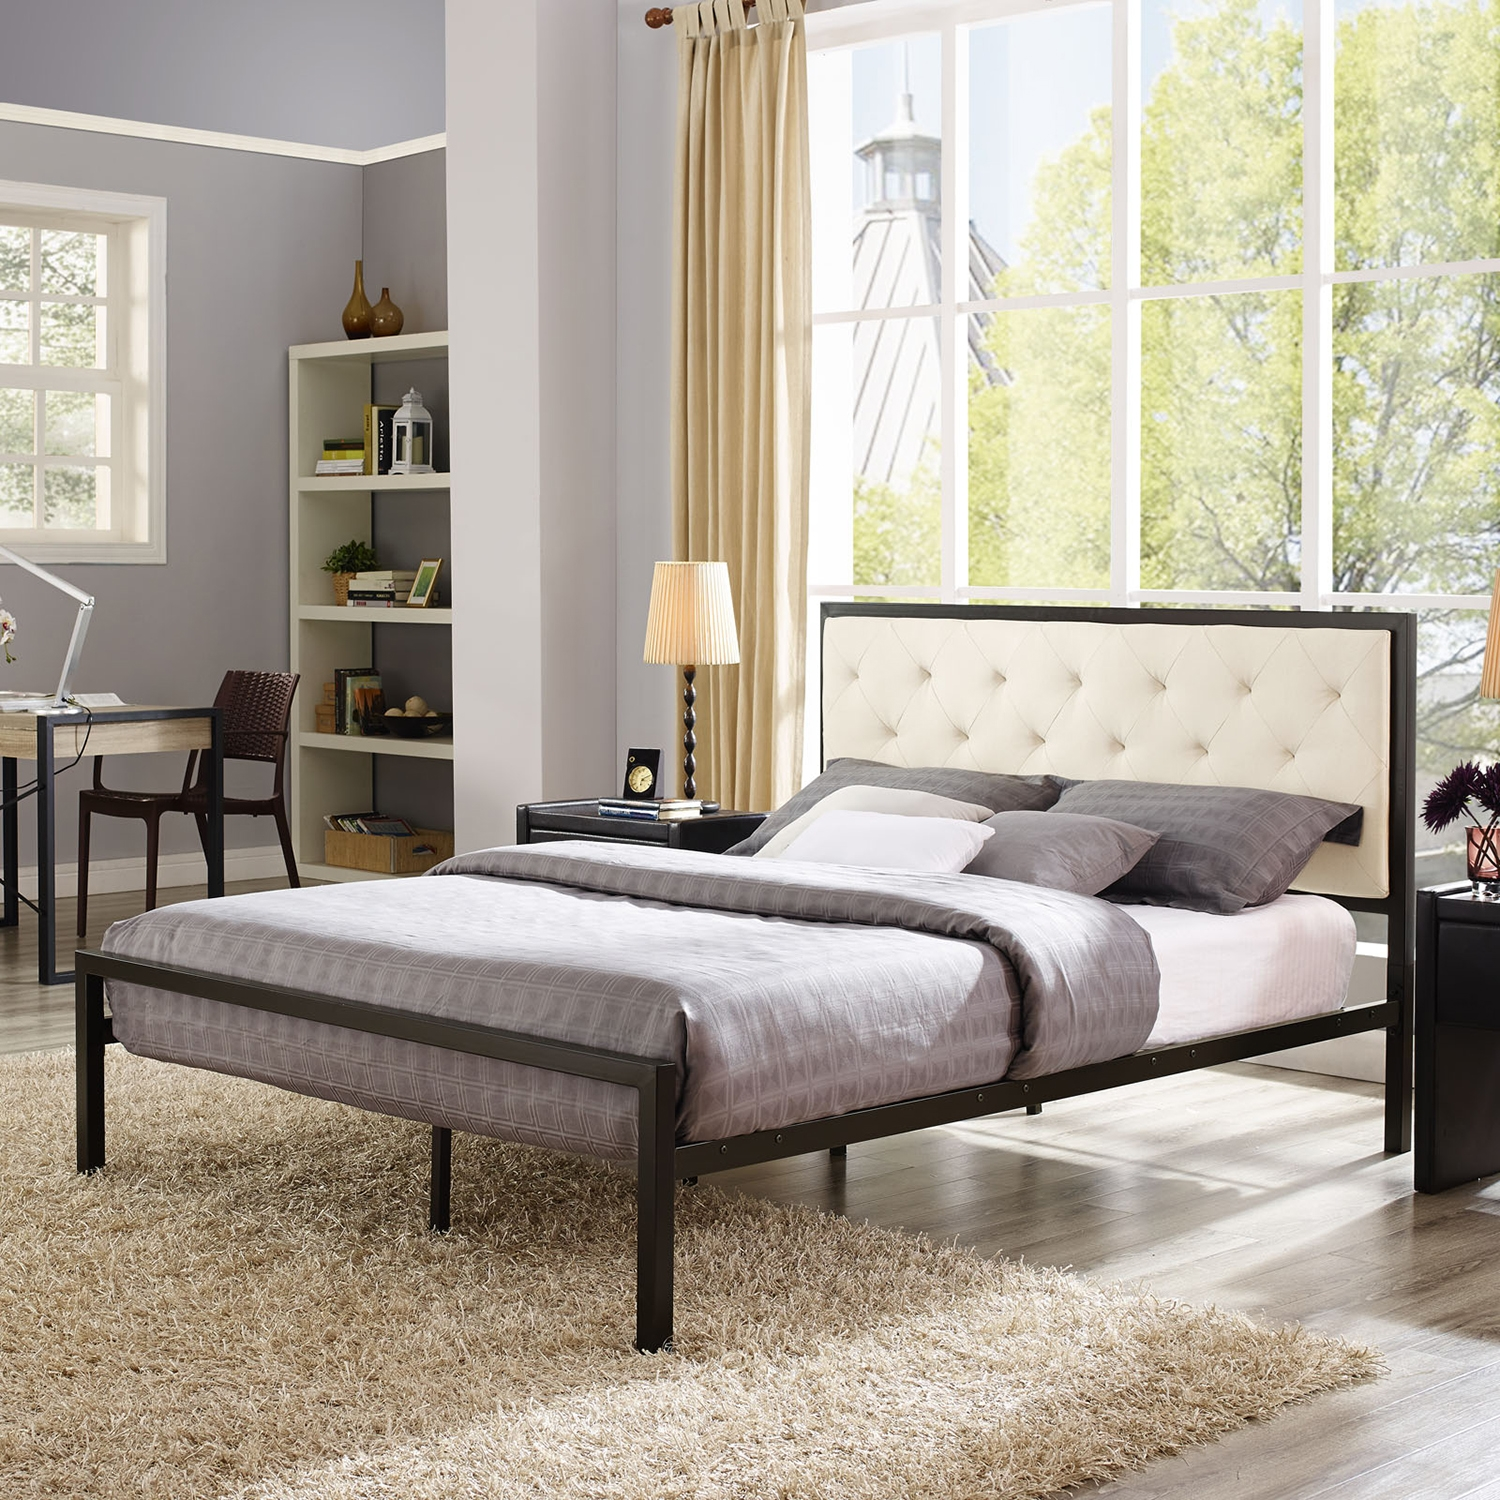 Mia Tufted Fabric Bed - Brown Beige - EEI-MOD-518-BRN-BEI-SET